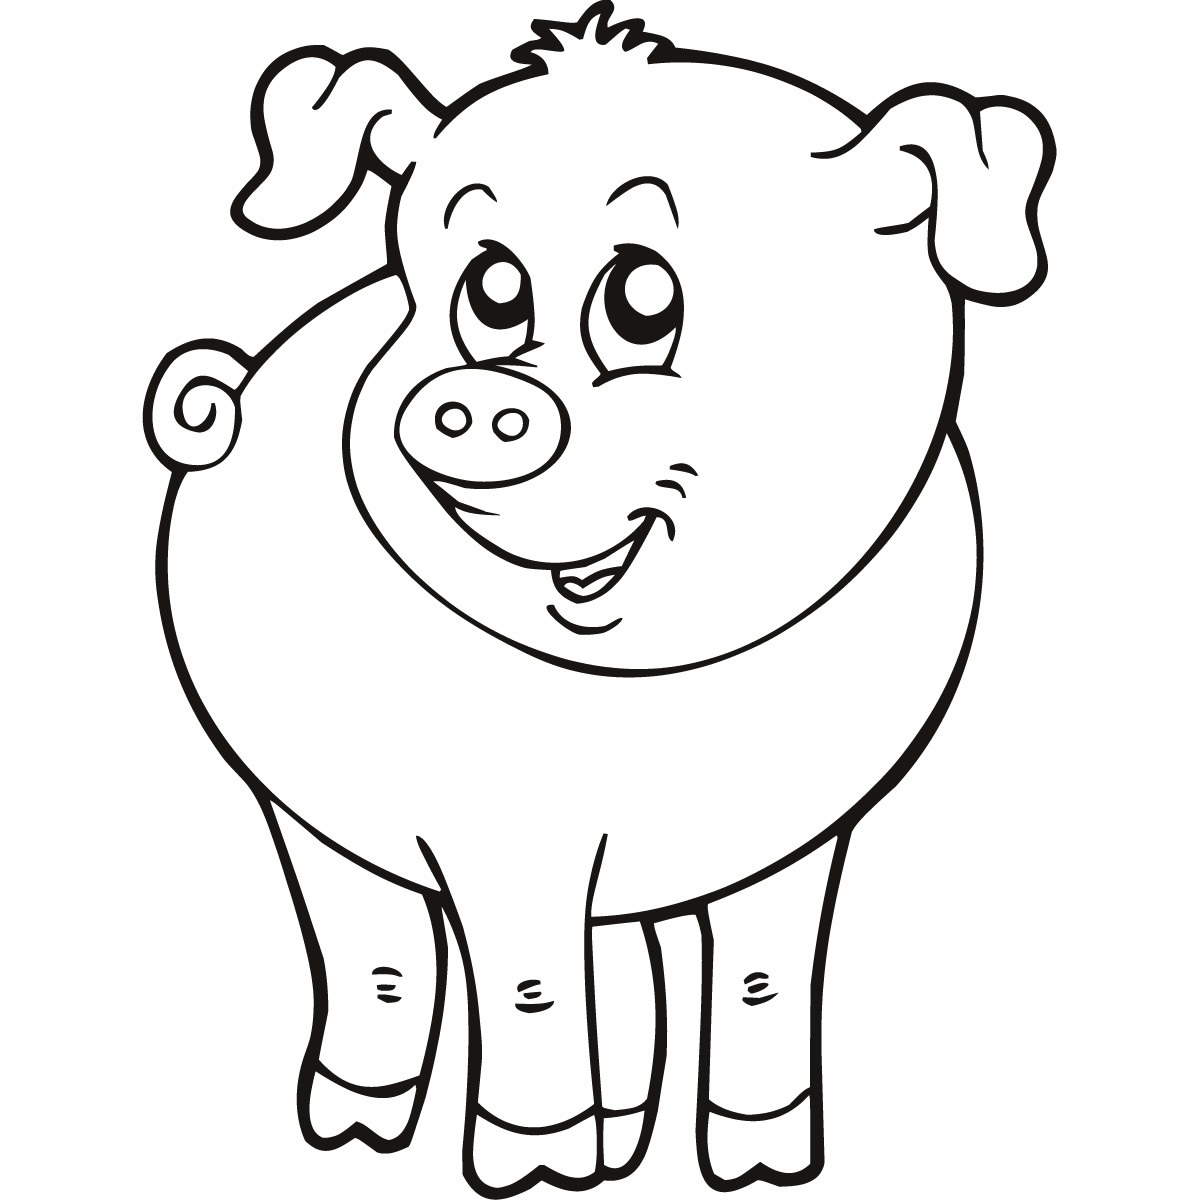 Free Farm Animal Drawings, Download Free Clip Art, Free Clip Art